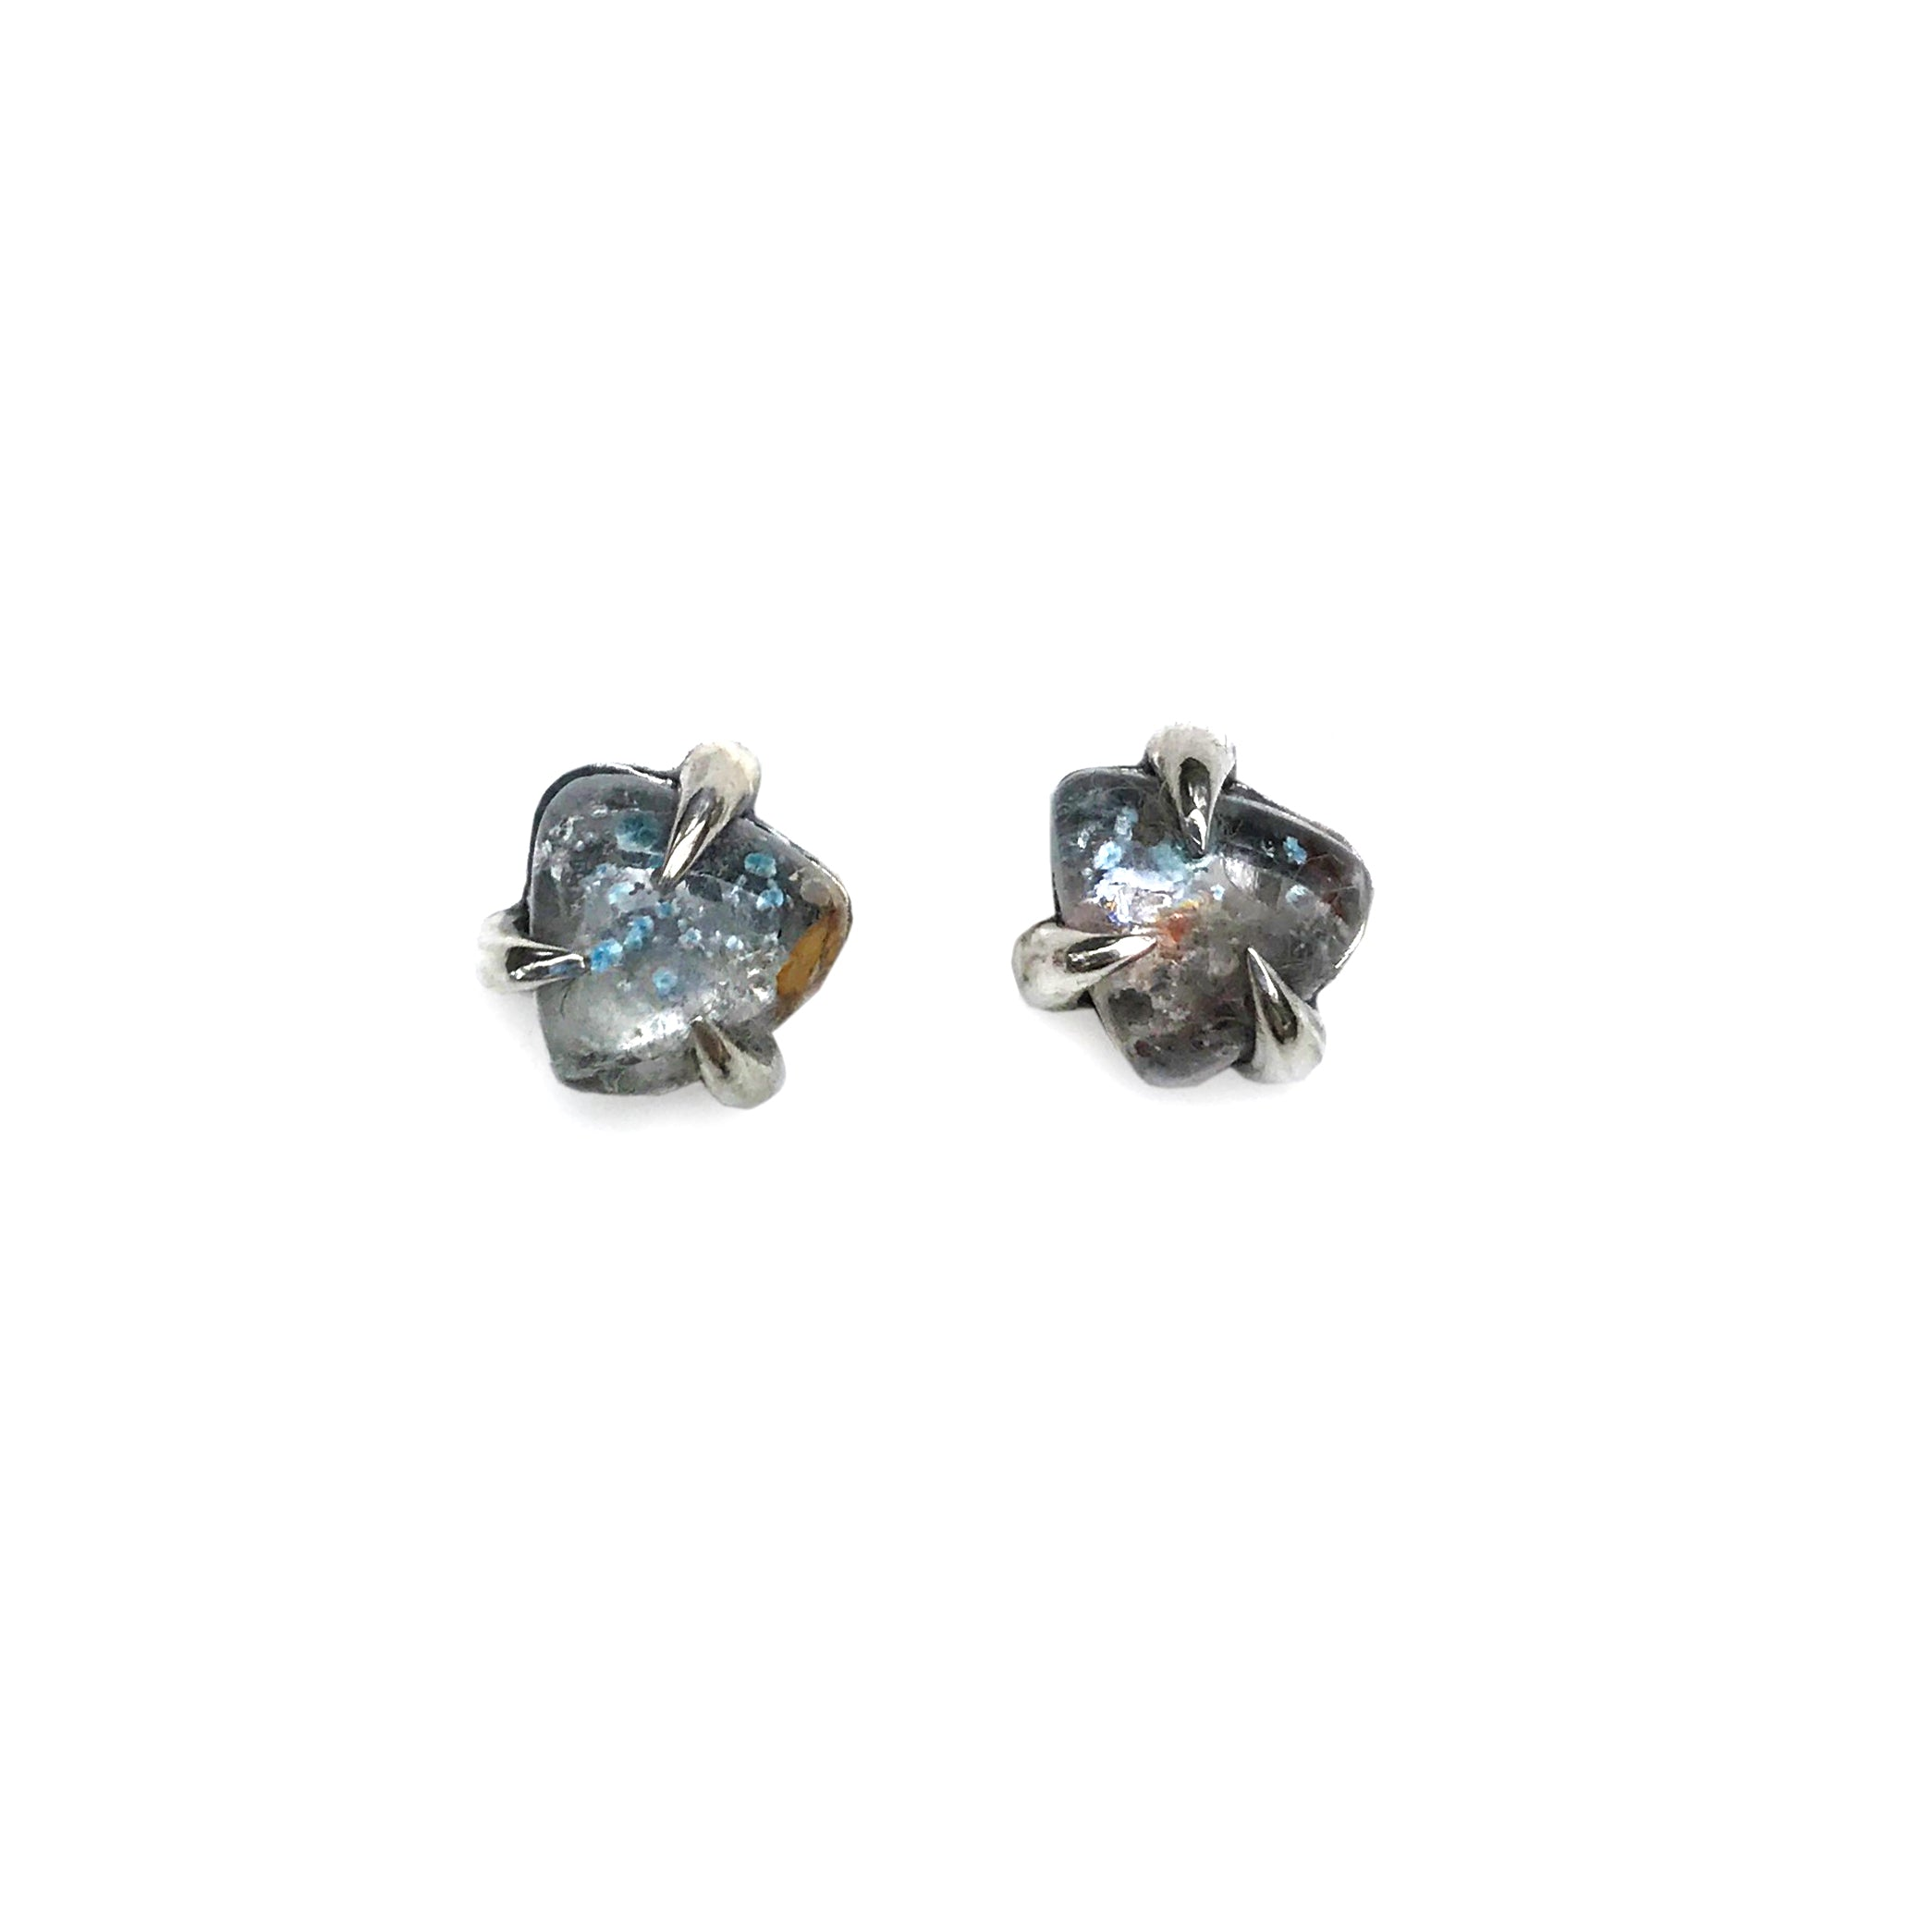 Paraiba Quartz Stud Earrings